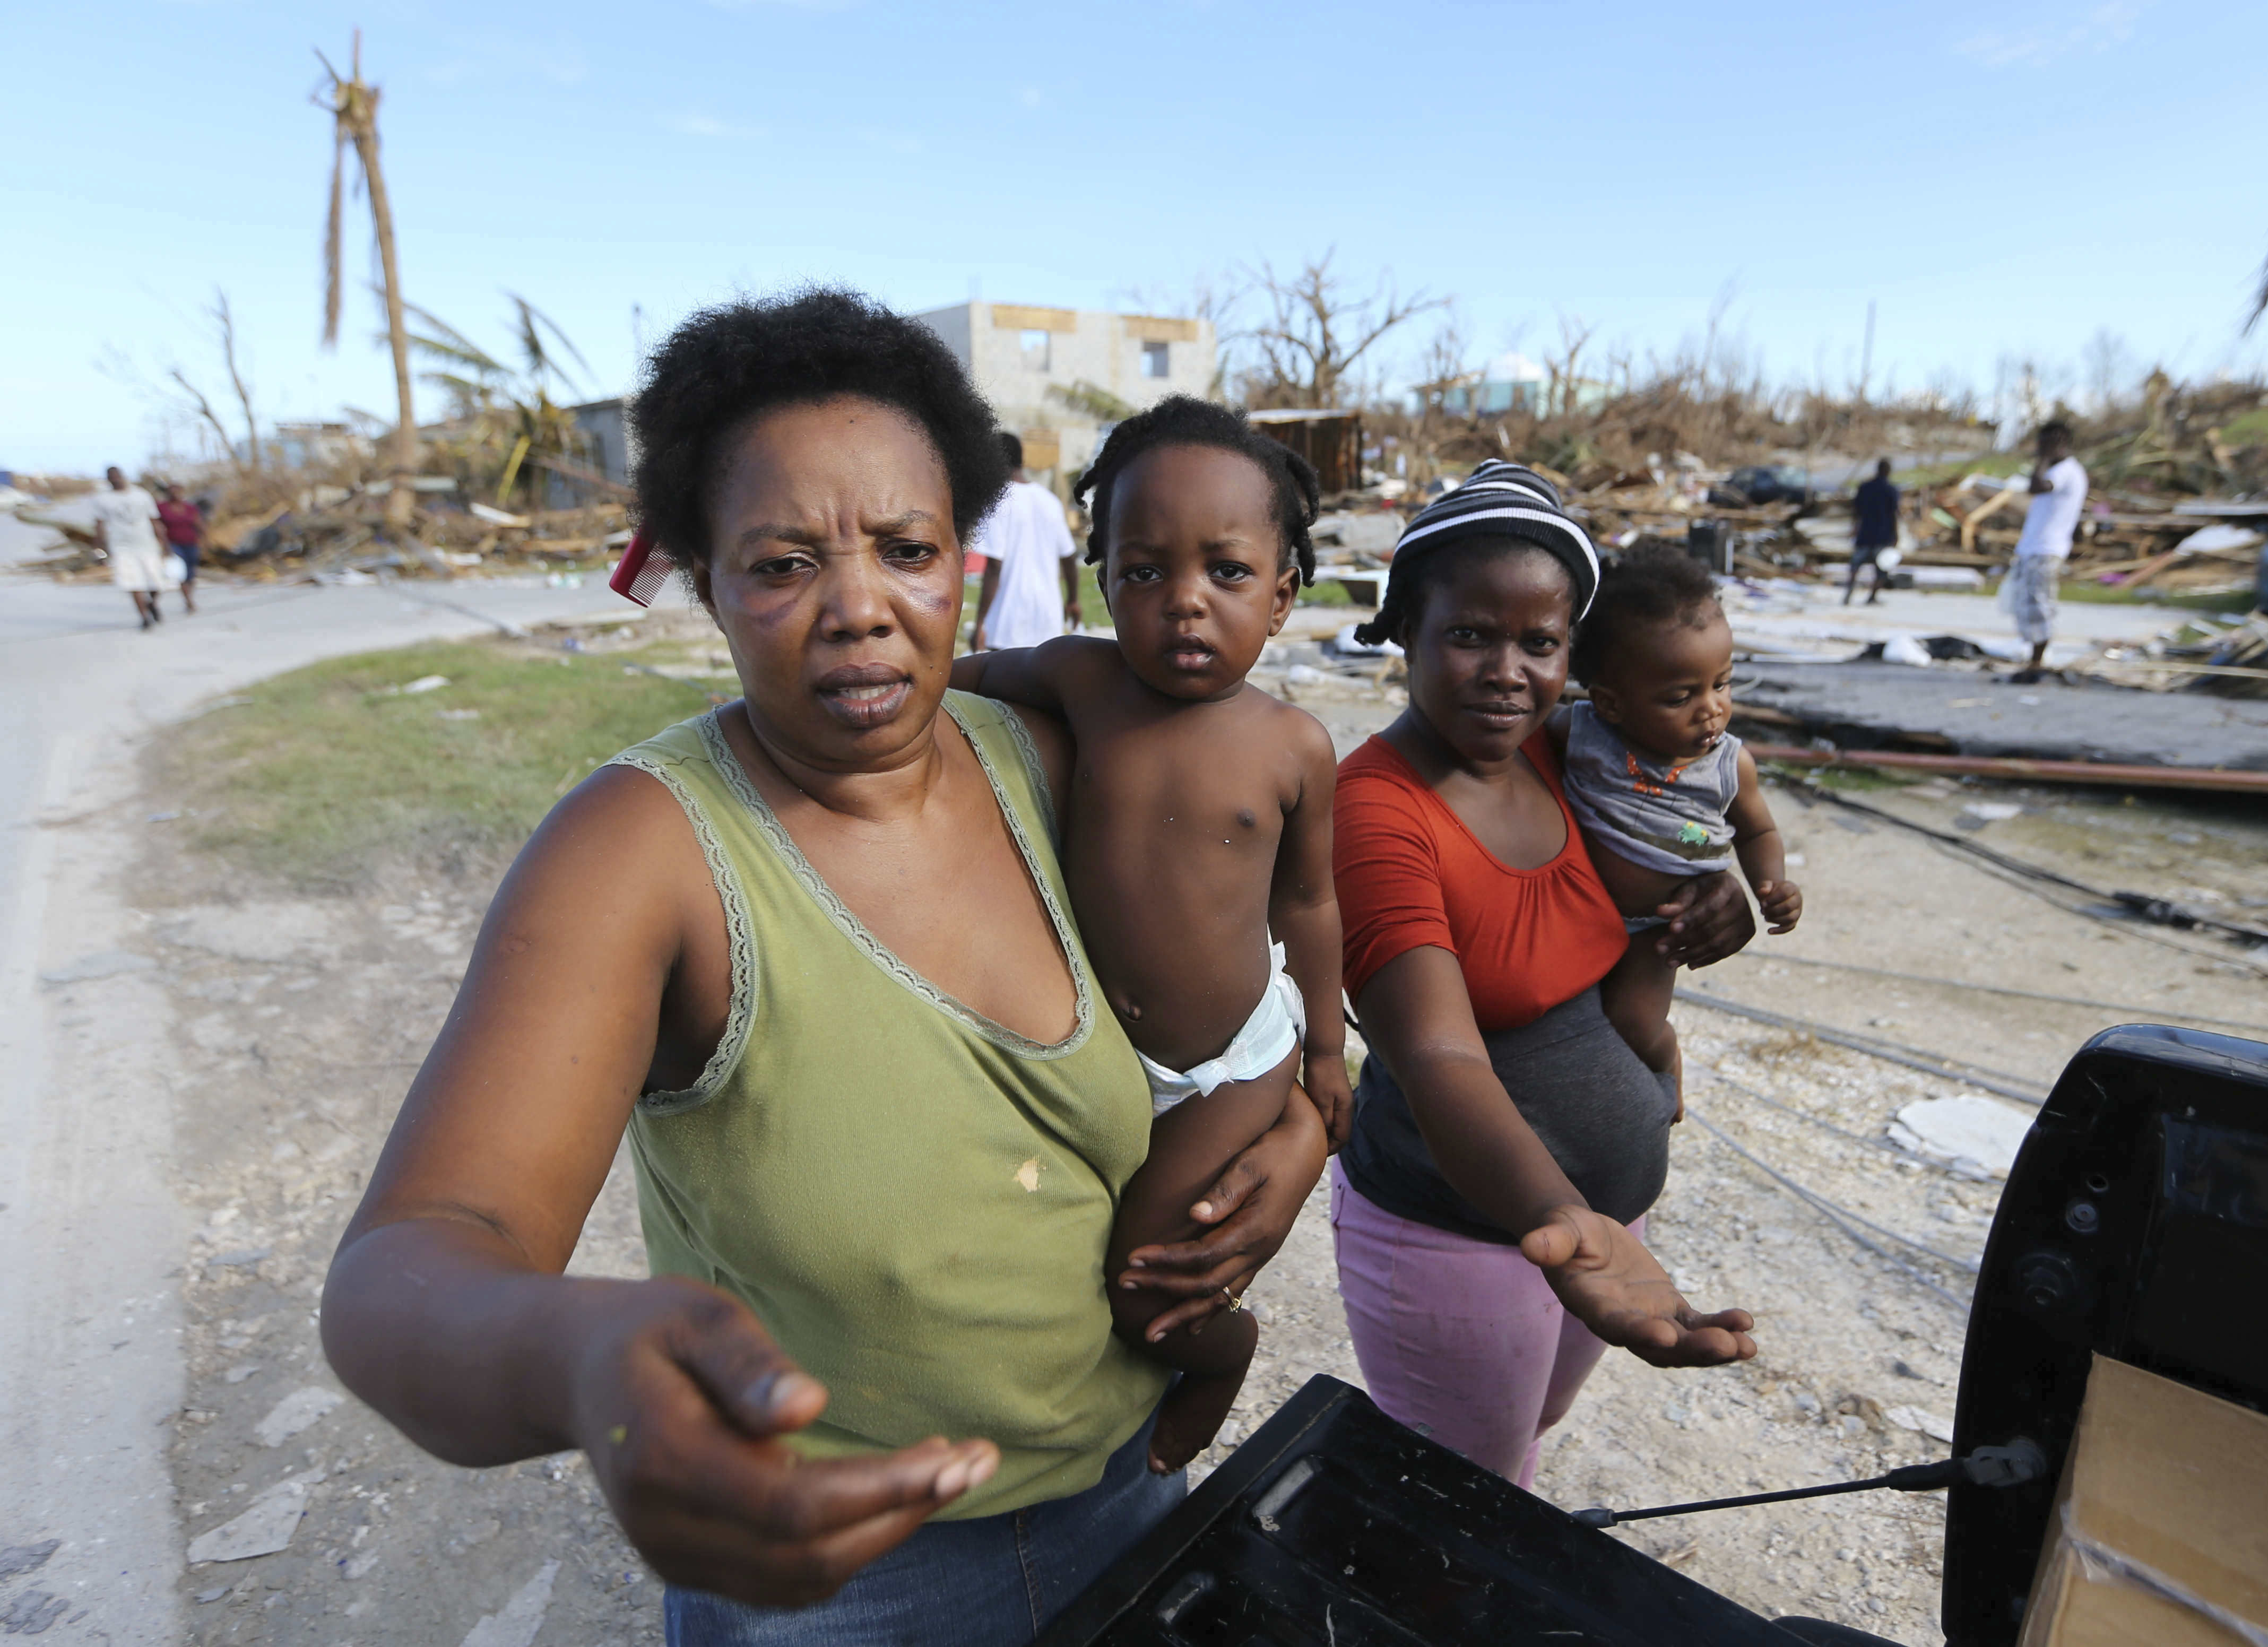 Residents an area destroyed by Hurricane Dorian ask for food and water from rescue volunteers in Marsh Harbor, Abaco Island, Bahamas.